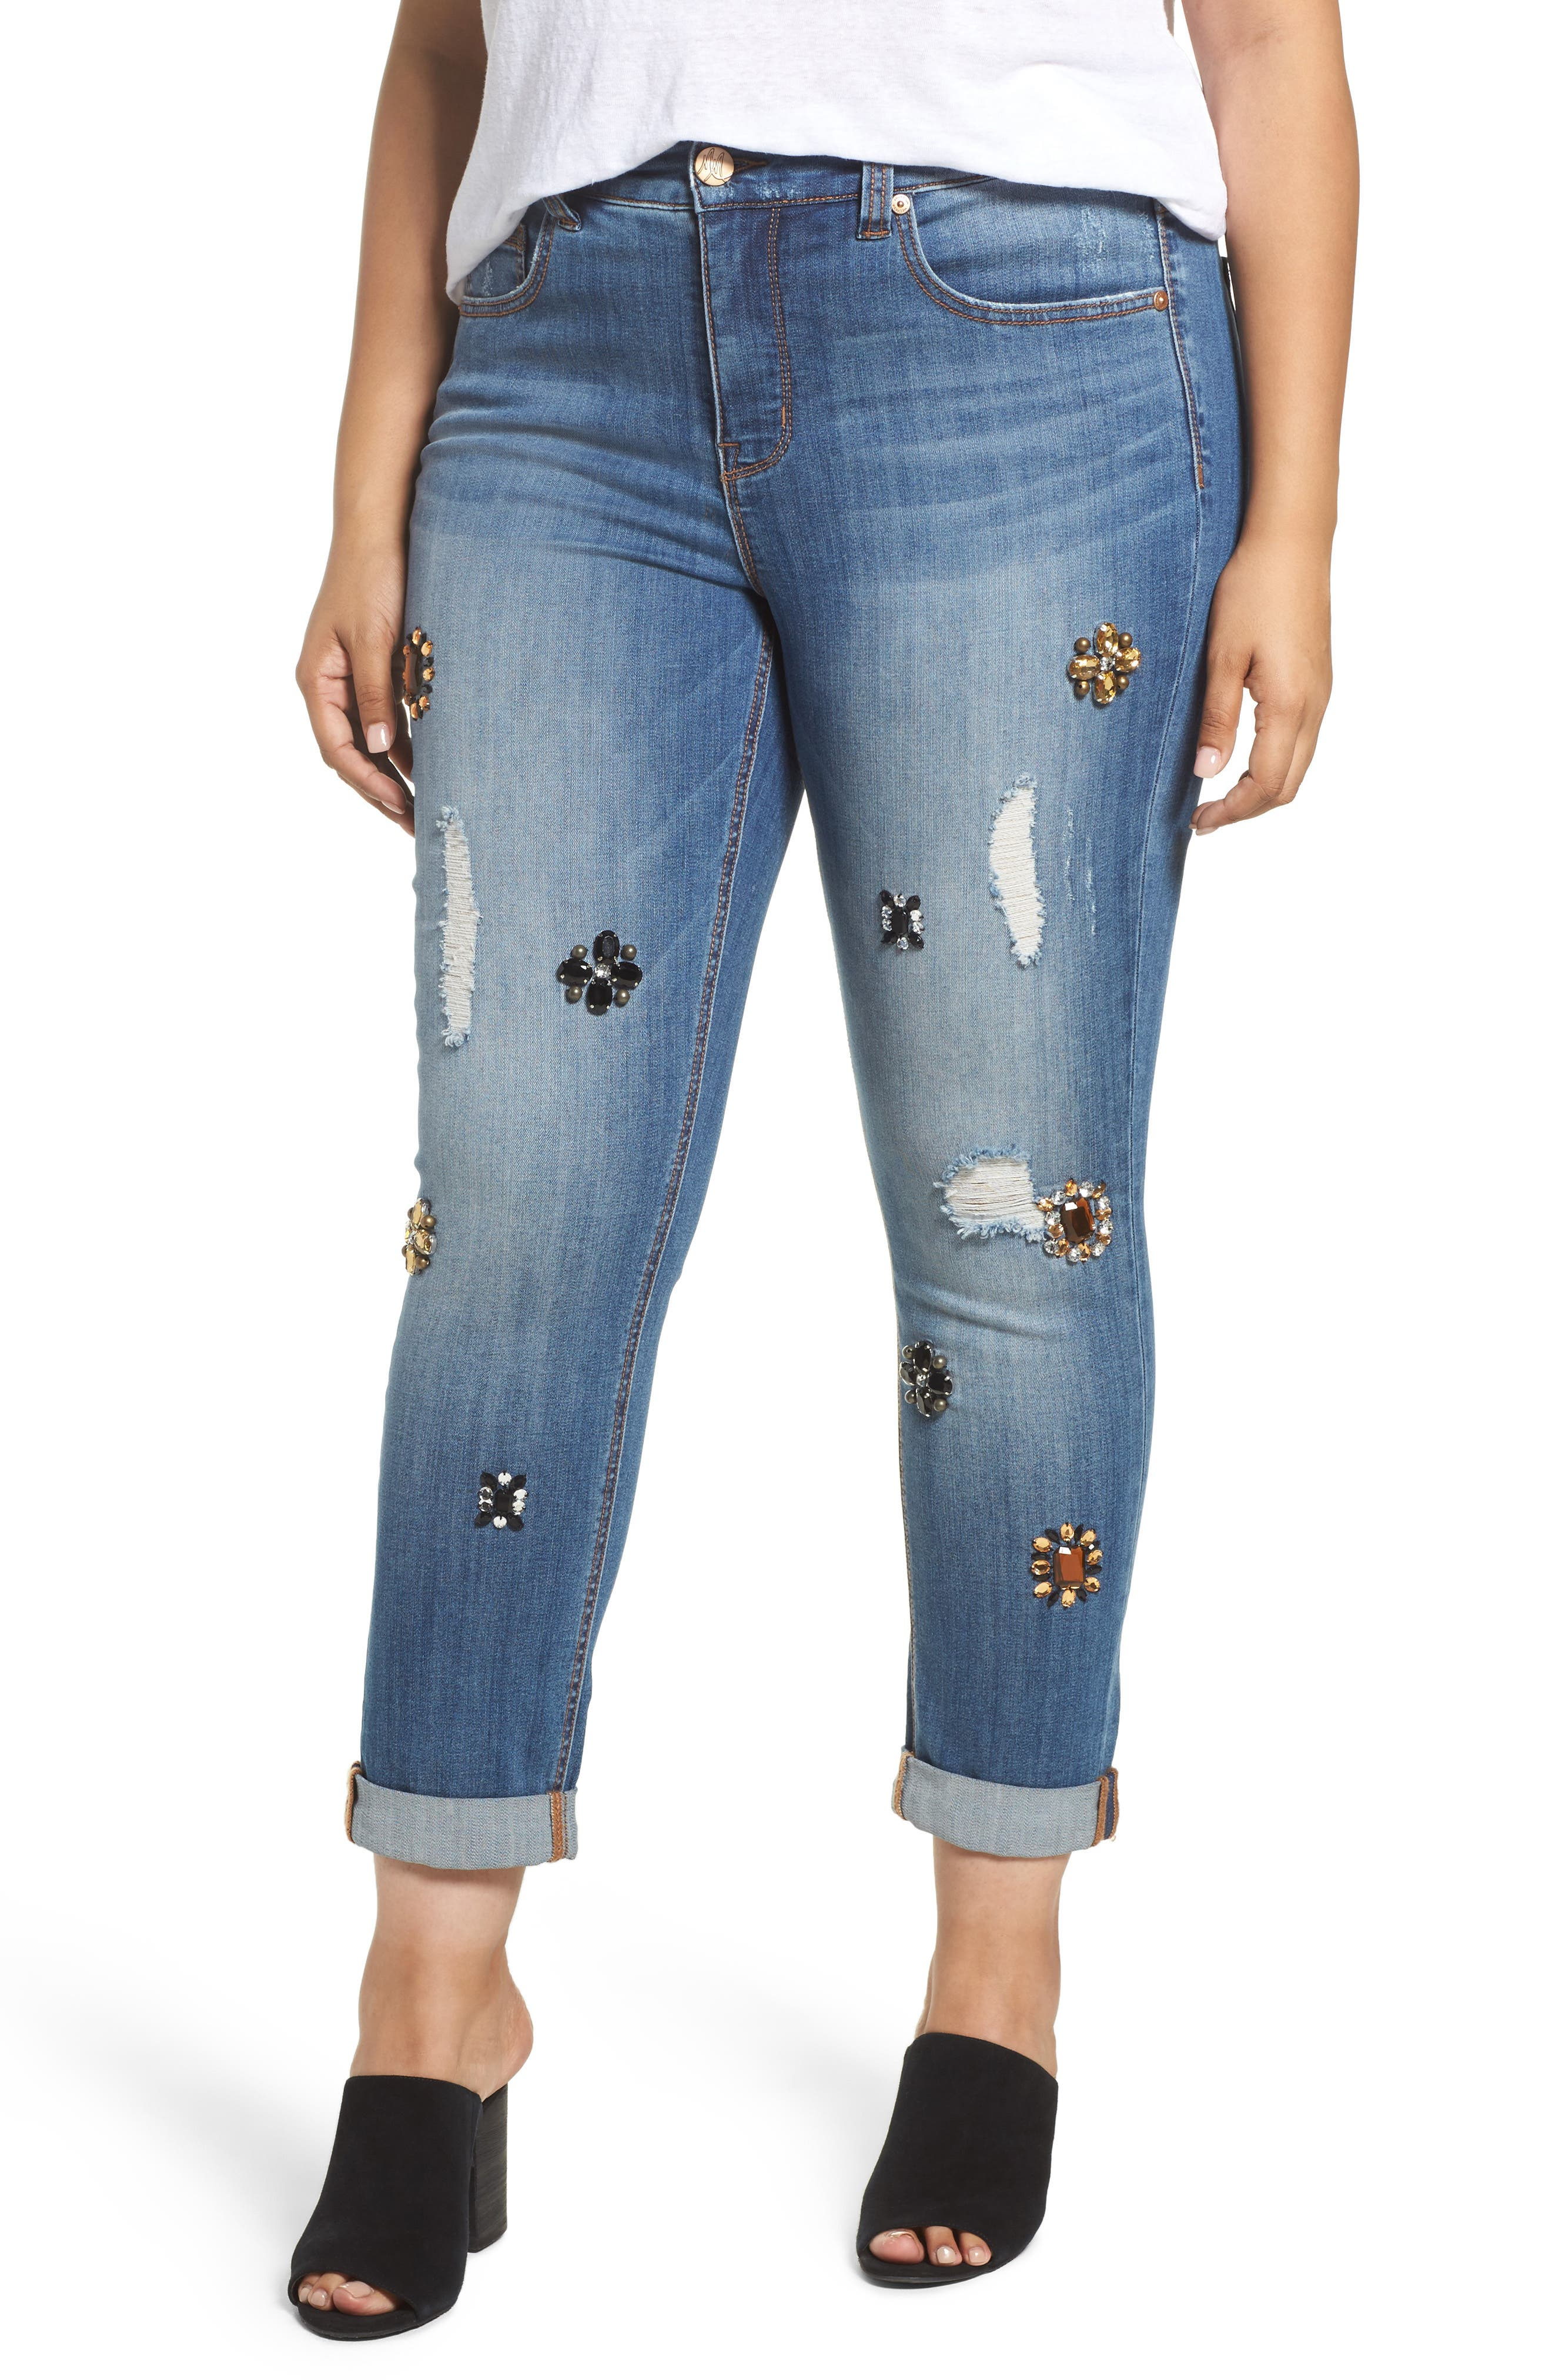 Melissa McCarthy Seven7 Jeweled Skinny Jeans (Heiress) (Plus Size)